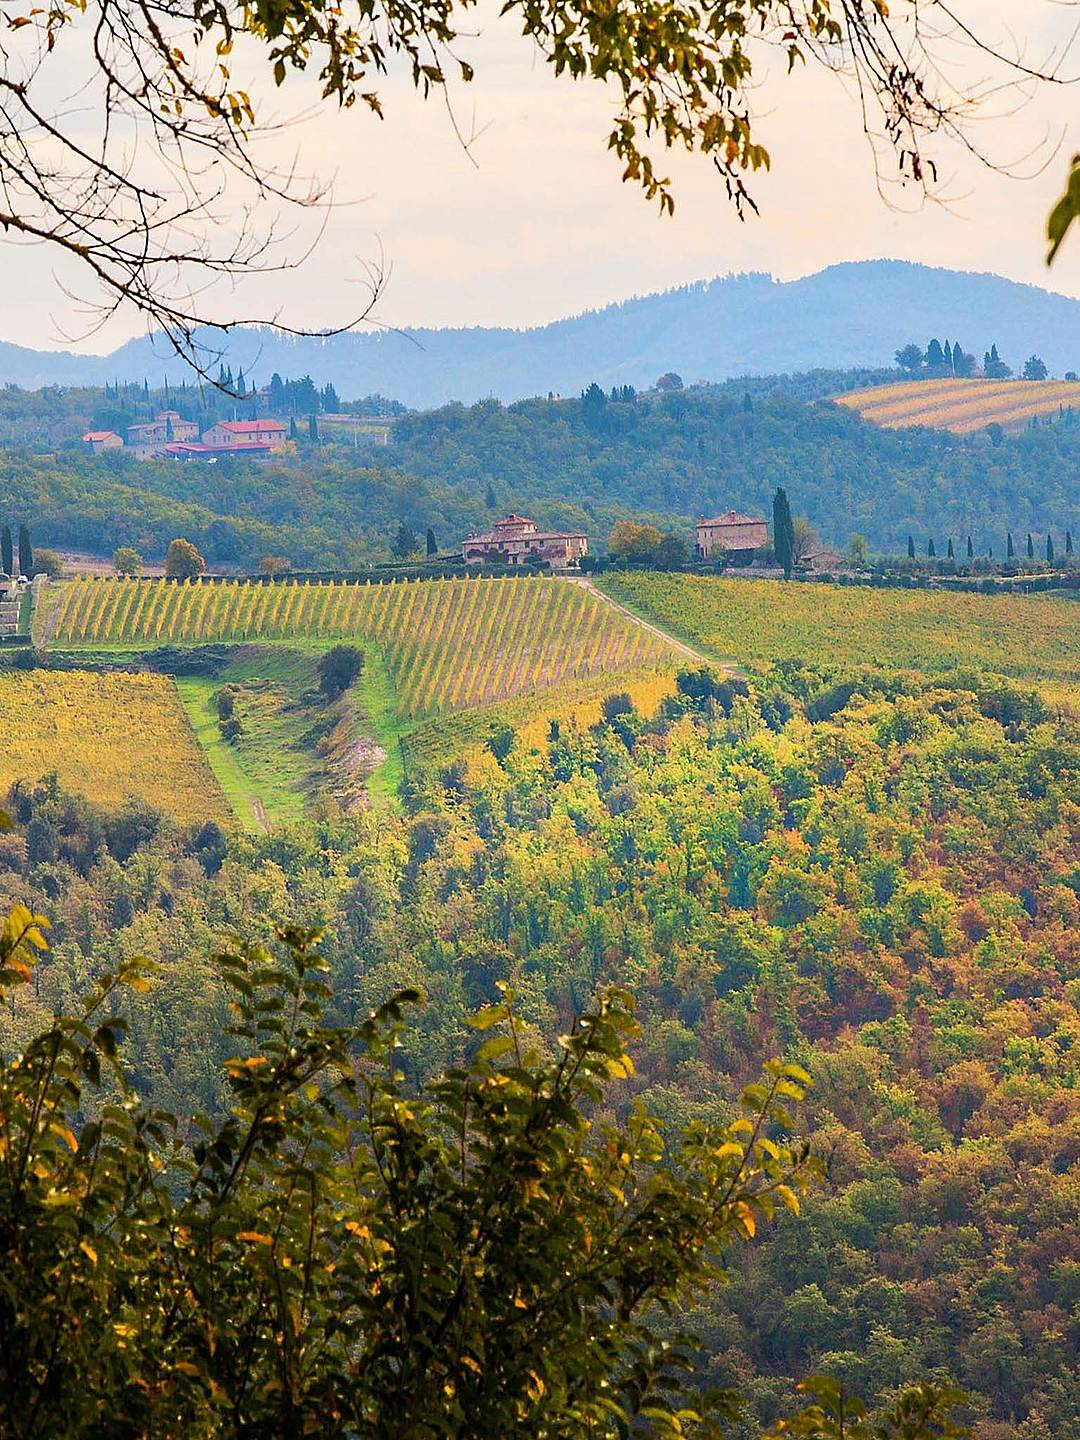 Chianti is one of Italy's most picturesque regions.